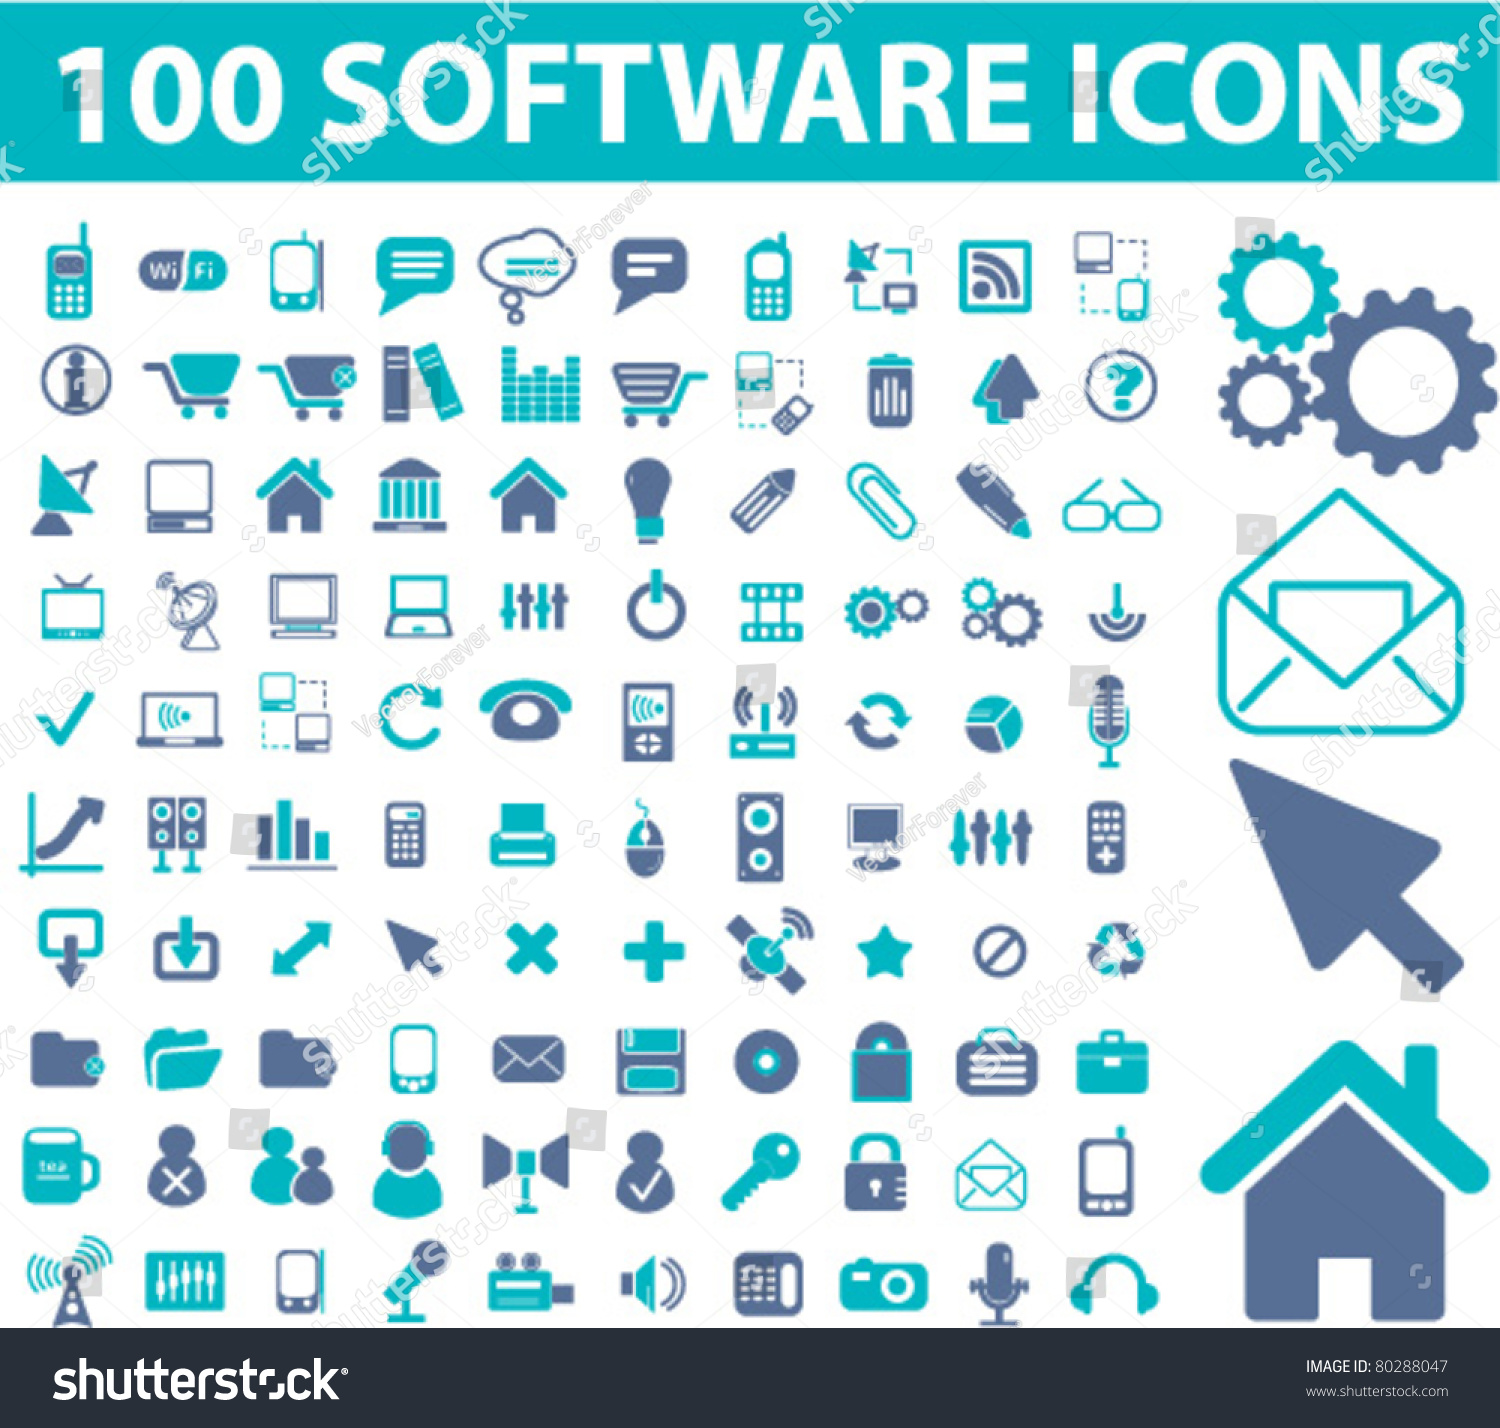 100 Software Icons Signs Vector 80288047 Shutterstock: vector image software